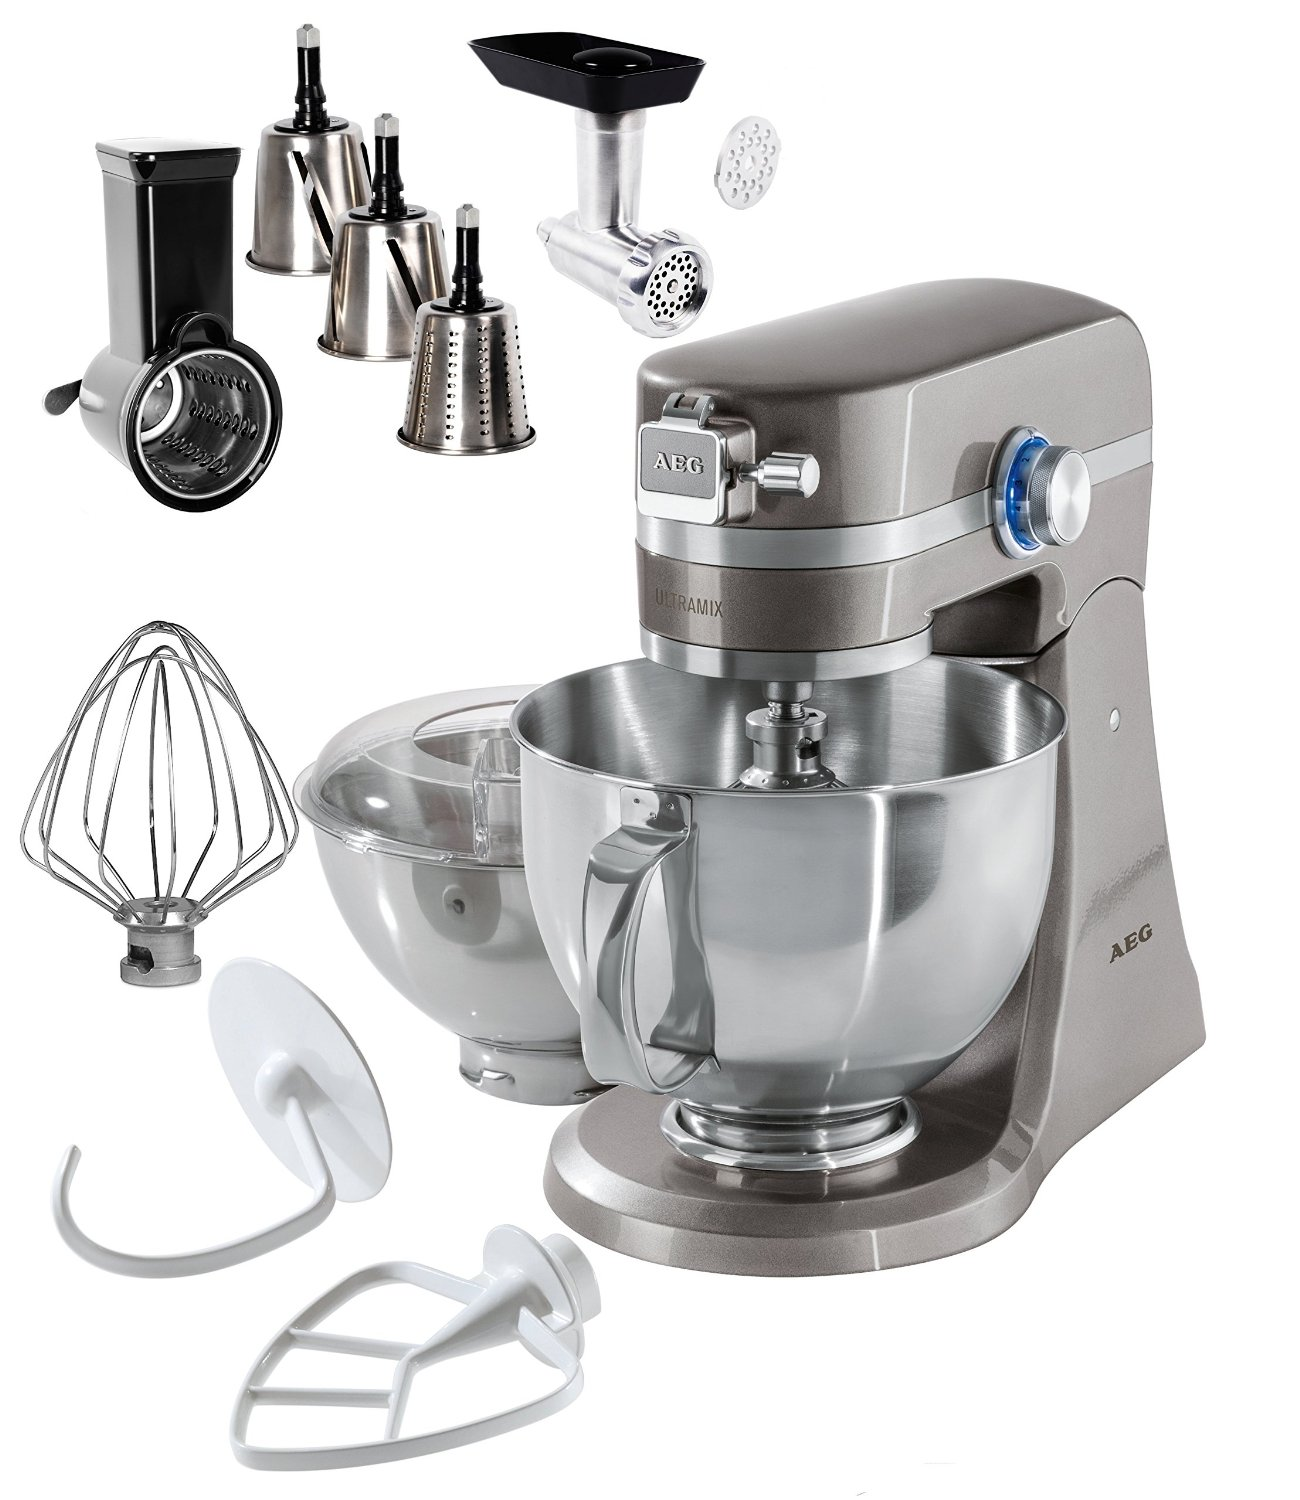 philips cucina hr2831 3 tassen küchenmaschine | ebay. philips ...